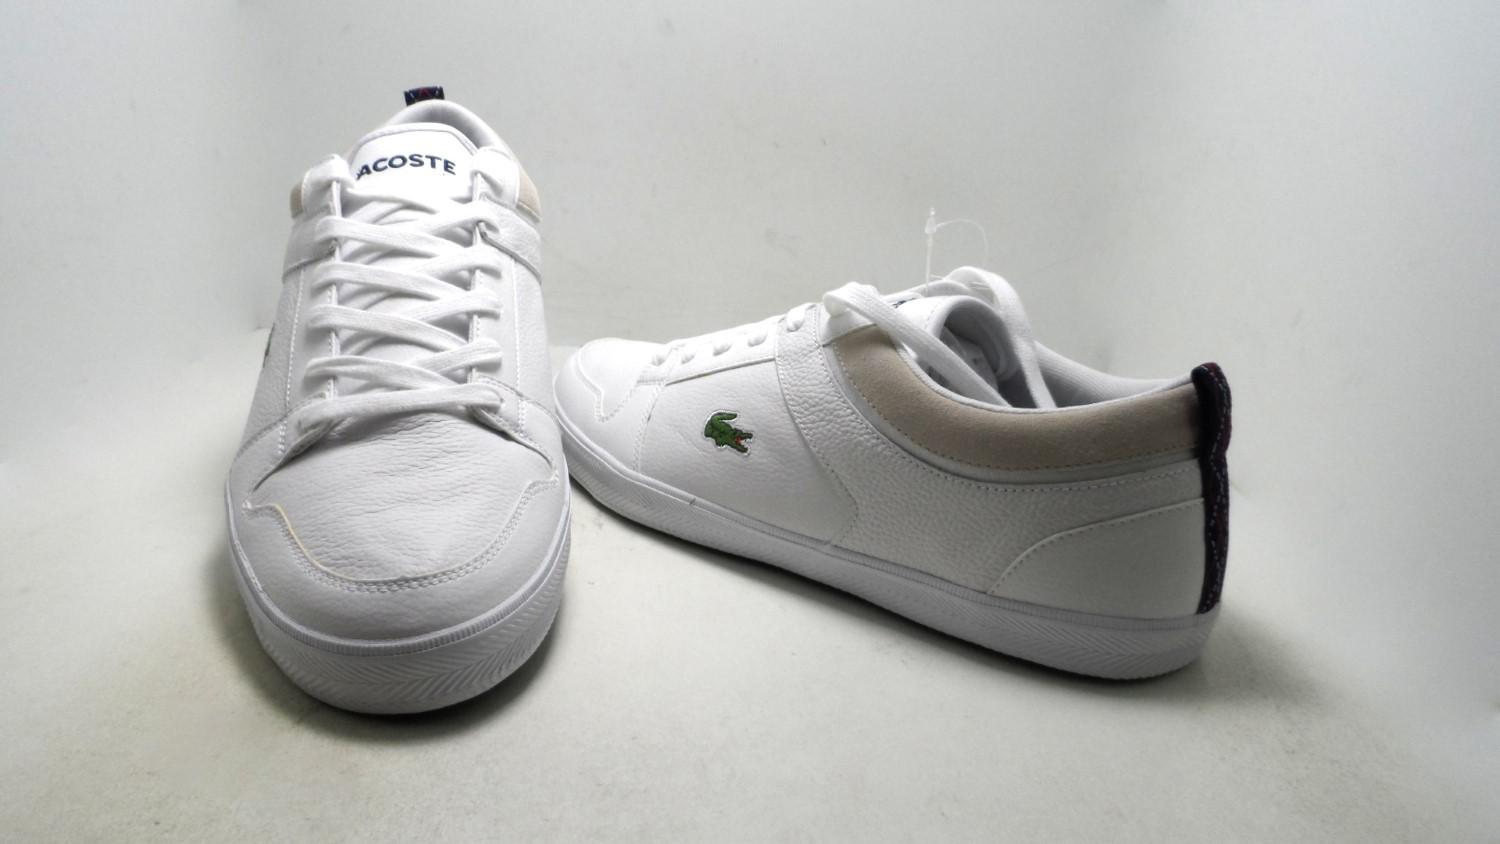 646a33e3f5ebf5 Lyst - Lacoste Ojetti Mag Spm Leather Fashion Sneaker White Size 11 ...